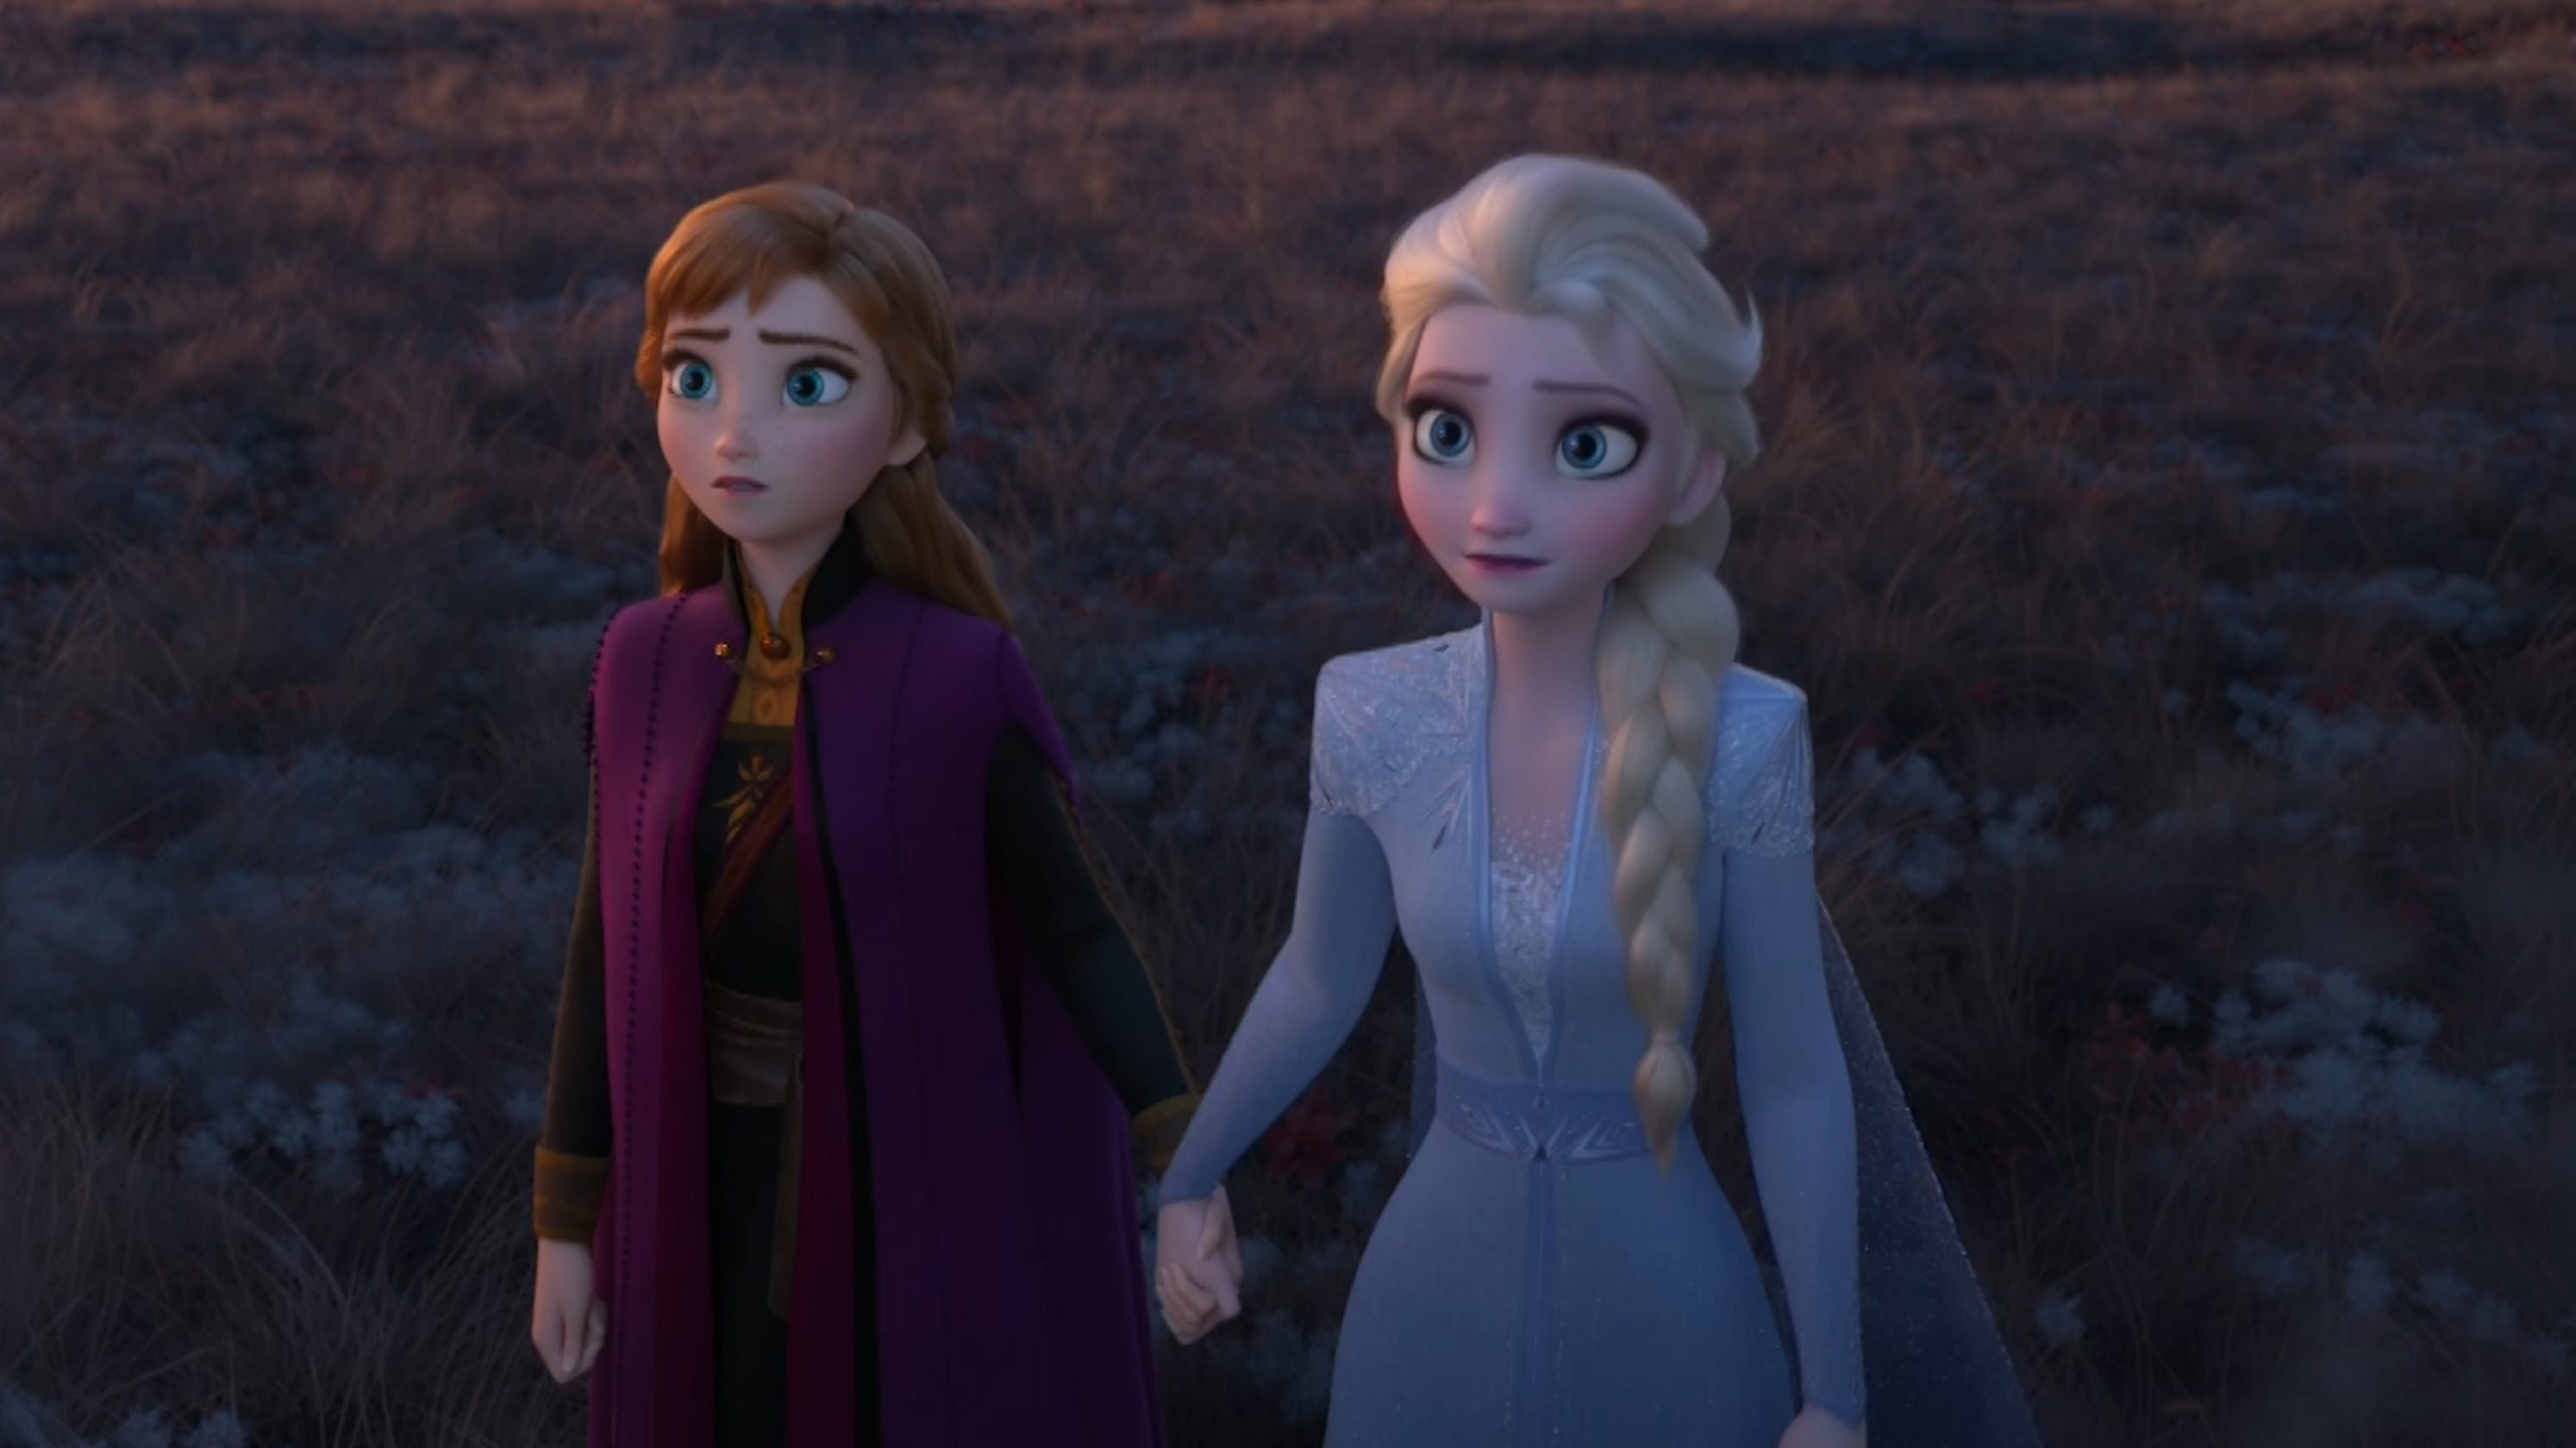 New breathtaking 'Frozen 2' trailer is here as Elsa and Anna hold hands to conquer new world